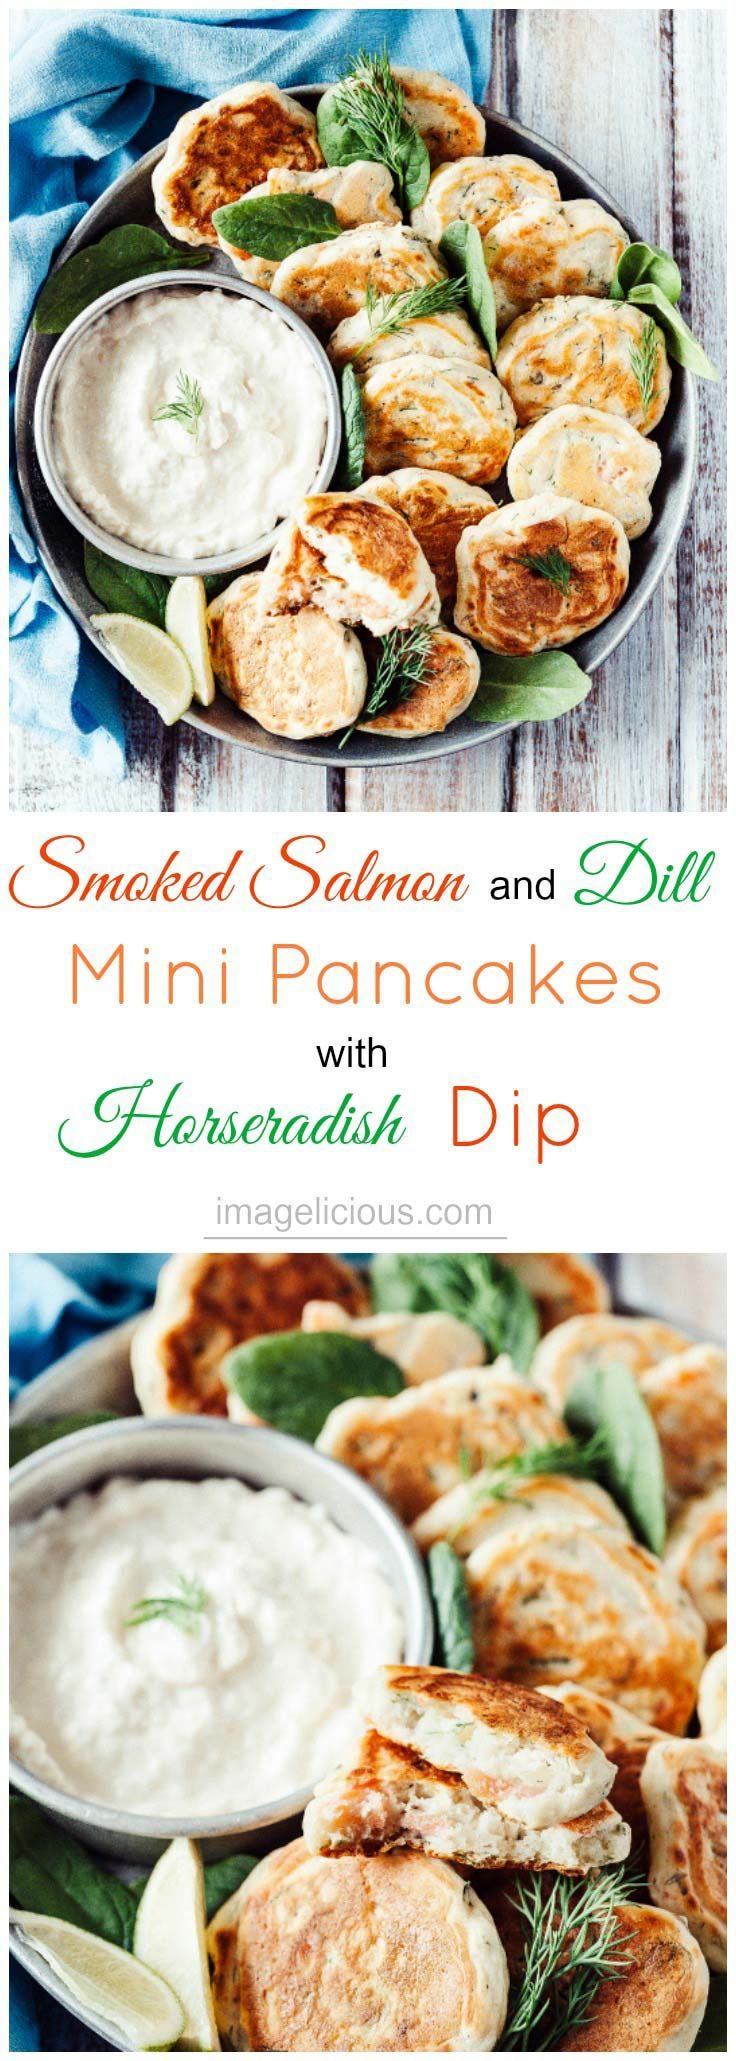 These Smoked Salmon and Dill Mini Pancakes with Horseradish Dip are a perfect appetizer to serve with a glass of sparkling wine and an excellent addition to any brunch | Imagelicious